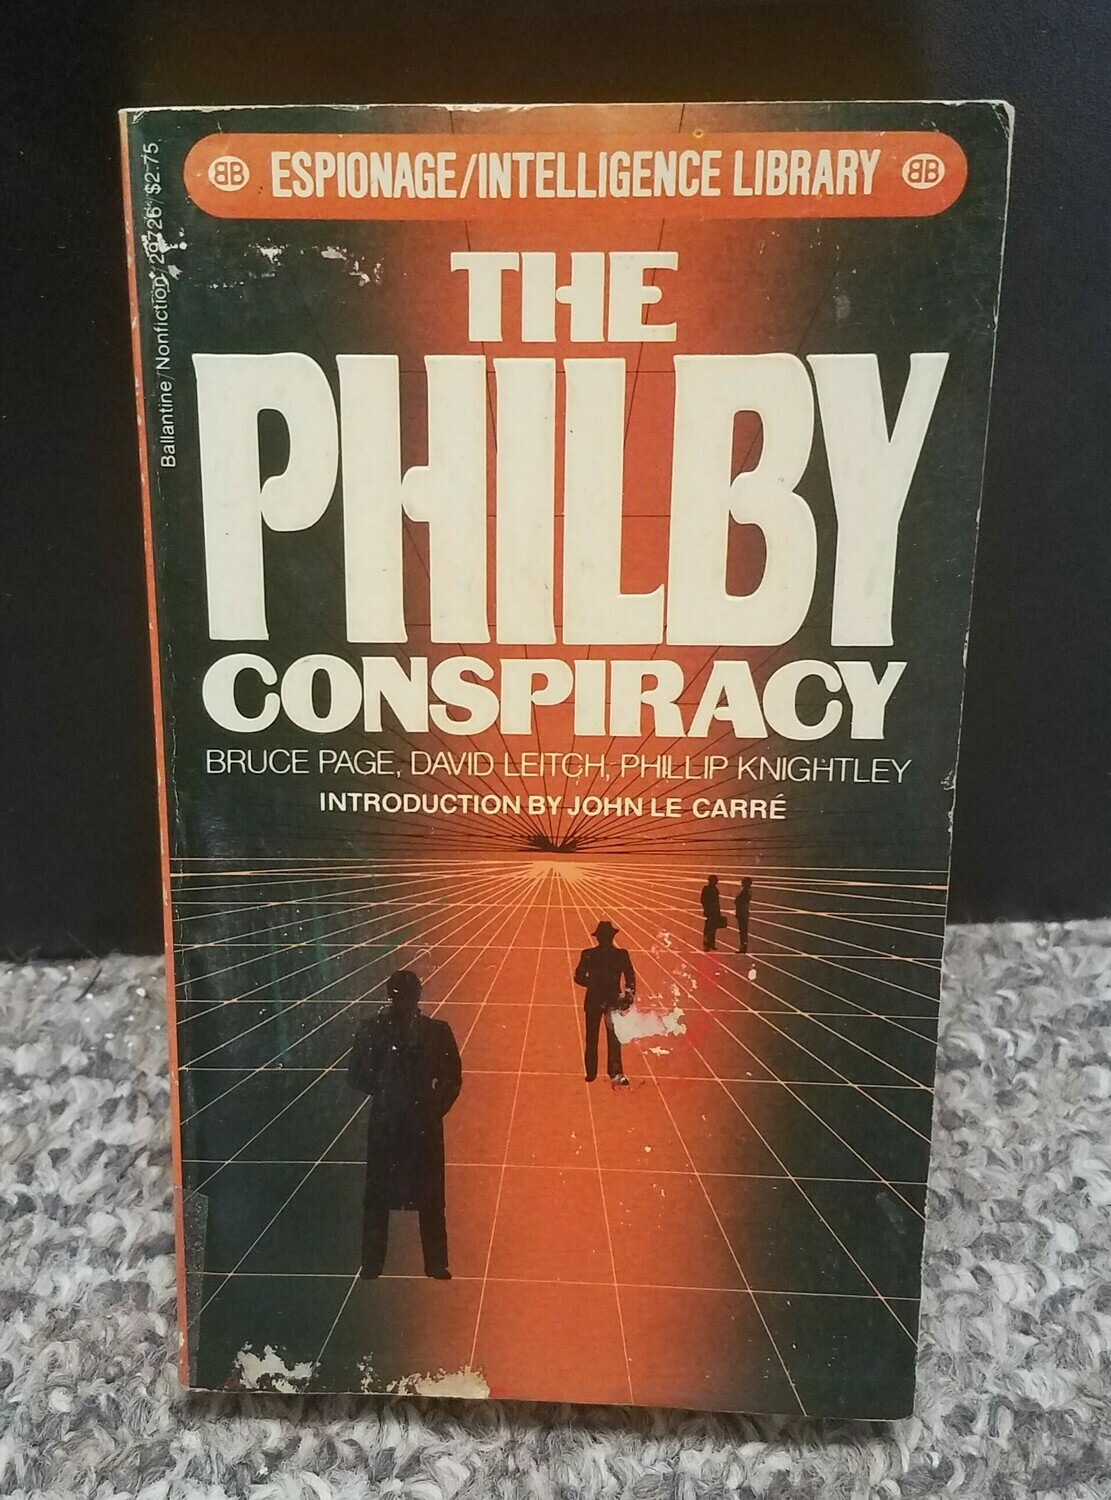 The Philby Conspiracy by Bruce Page, David Leitch, and Phillip Knightley